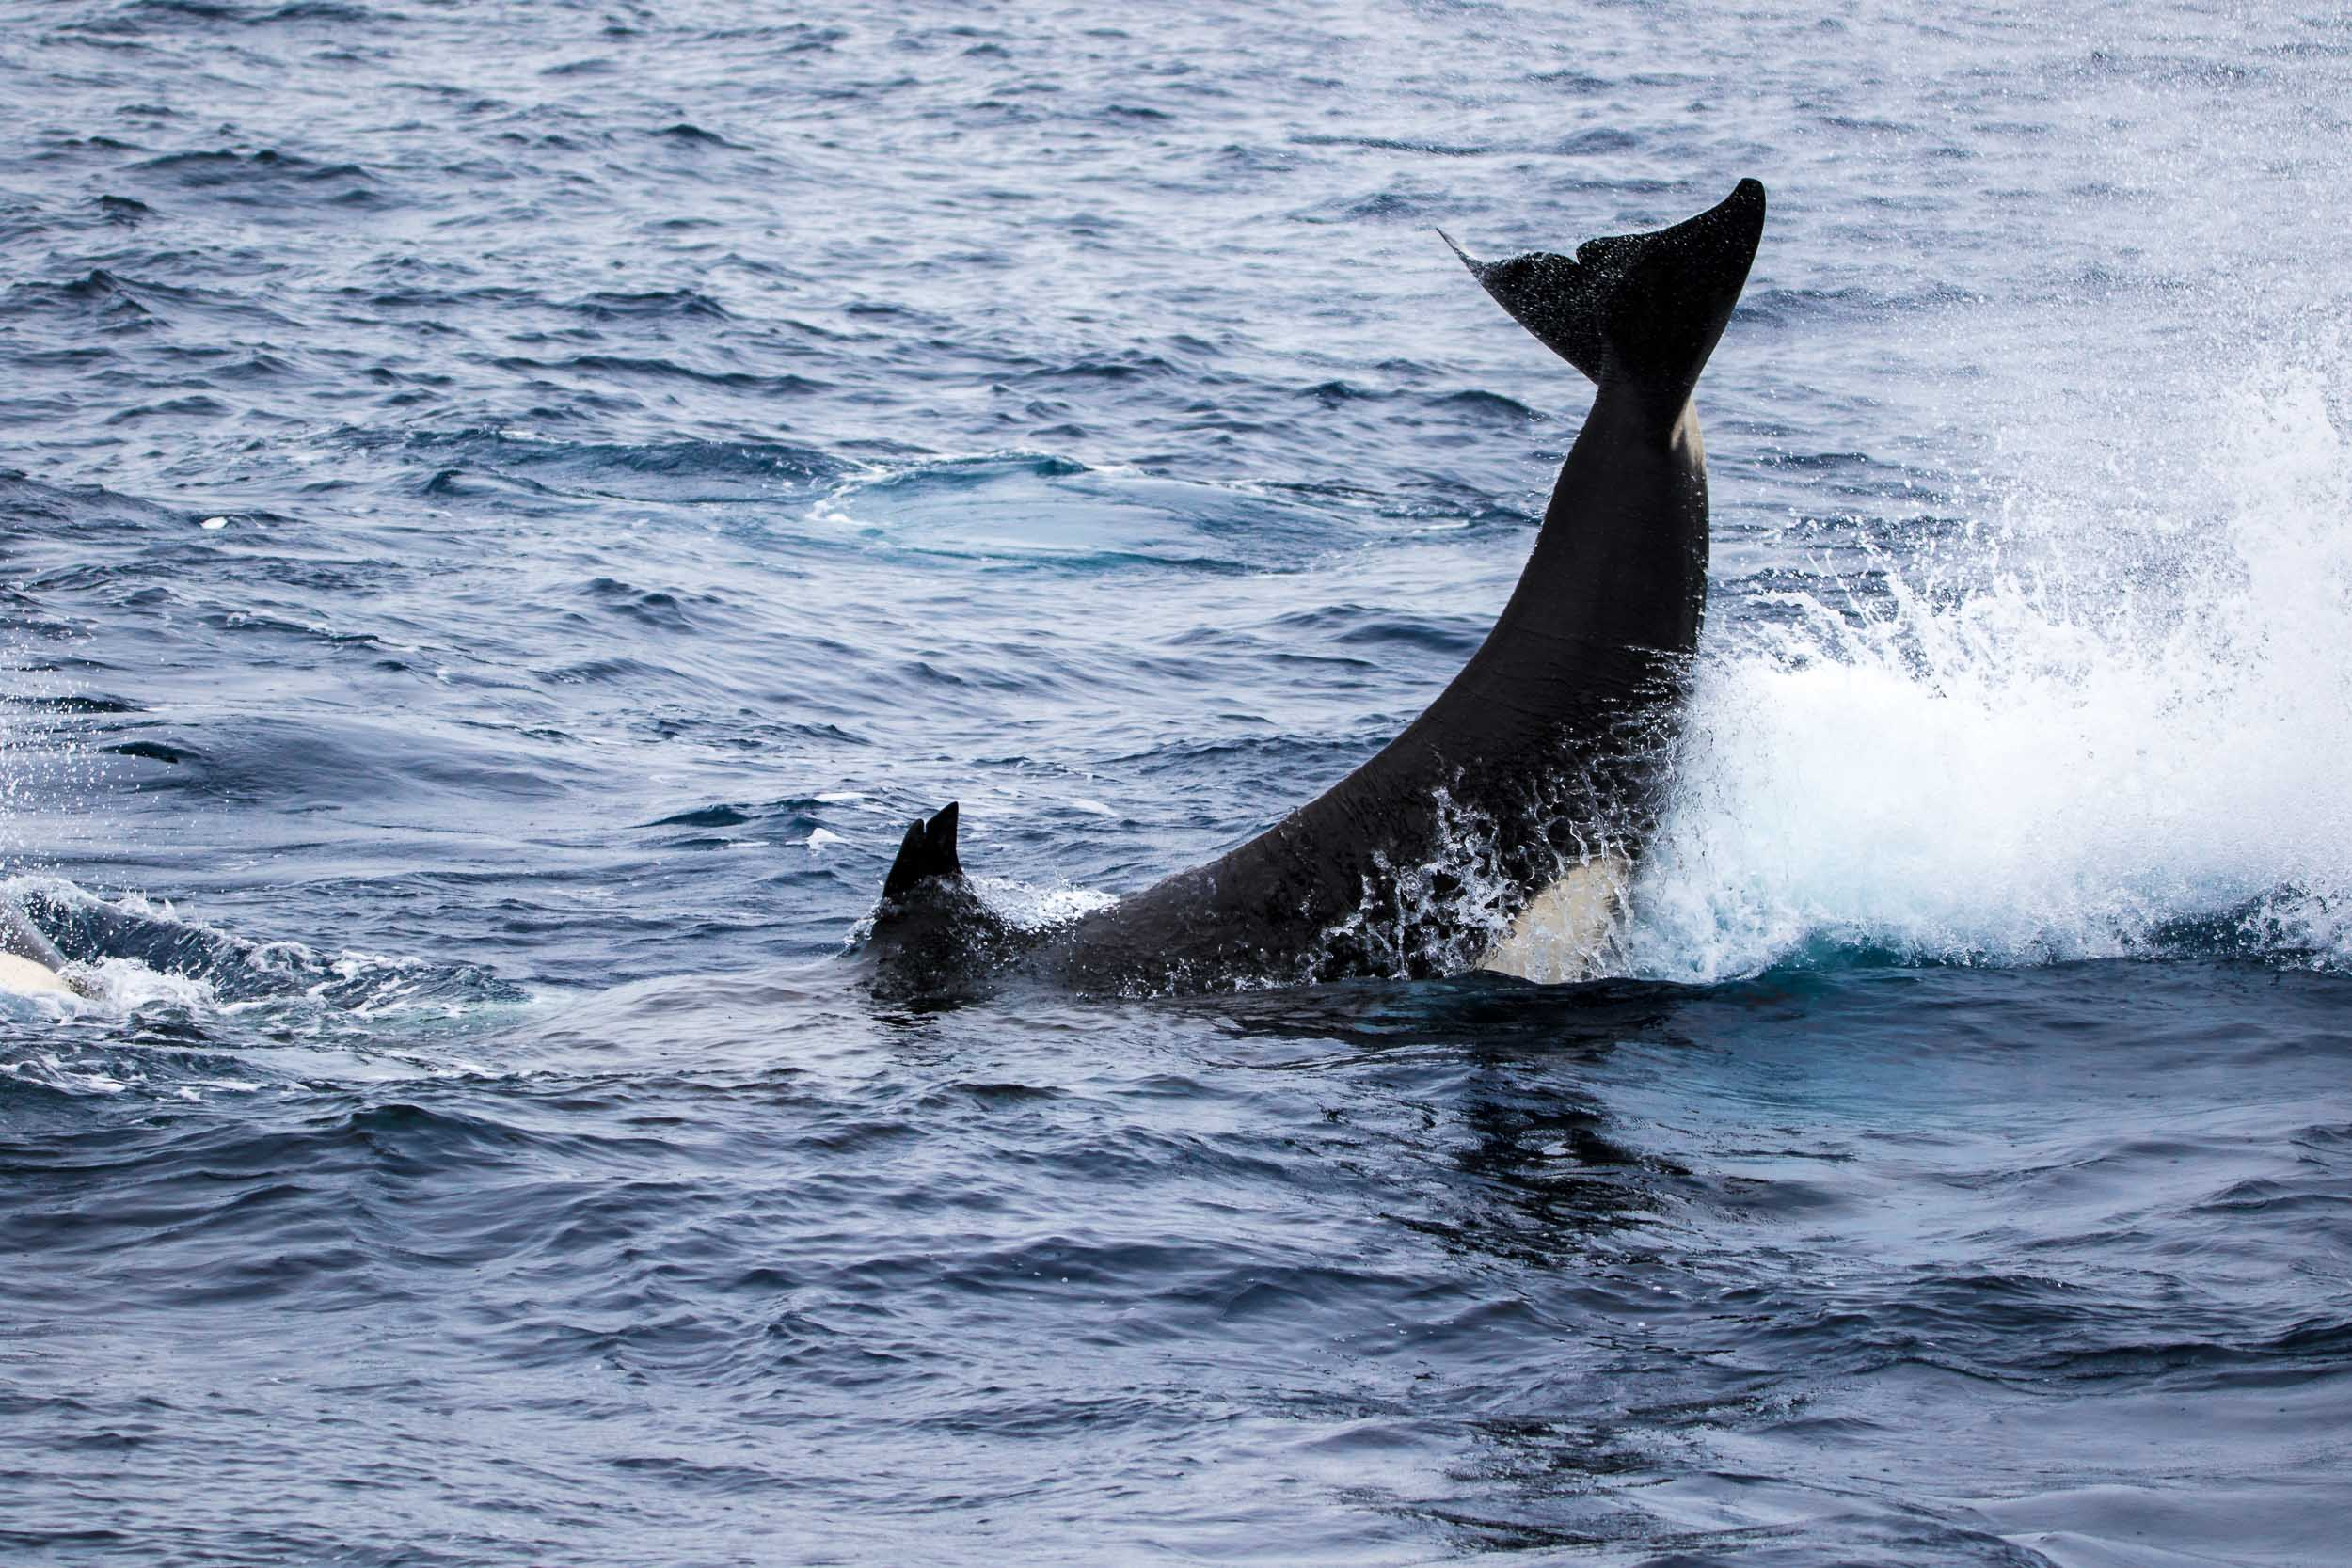 Killer whale tail slap, Bremer Bay, Western Australia 1